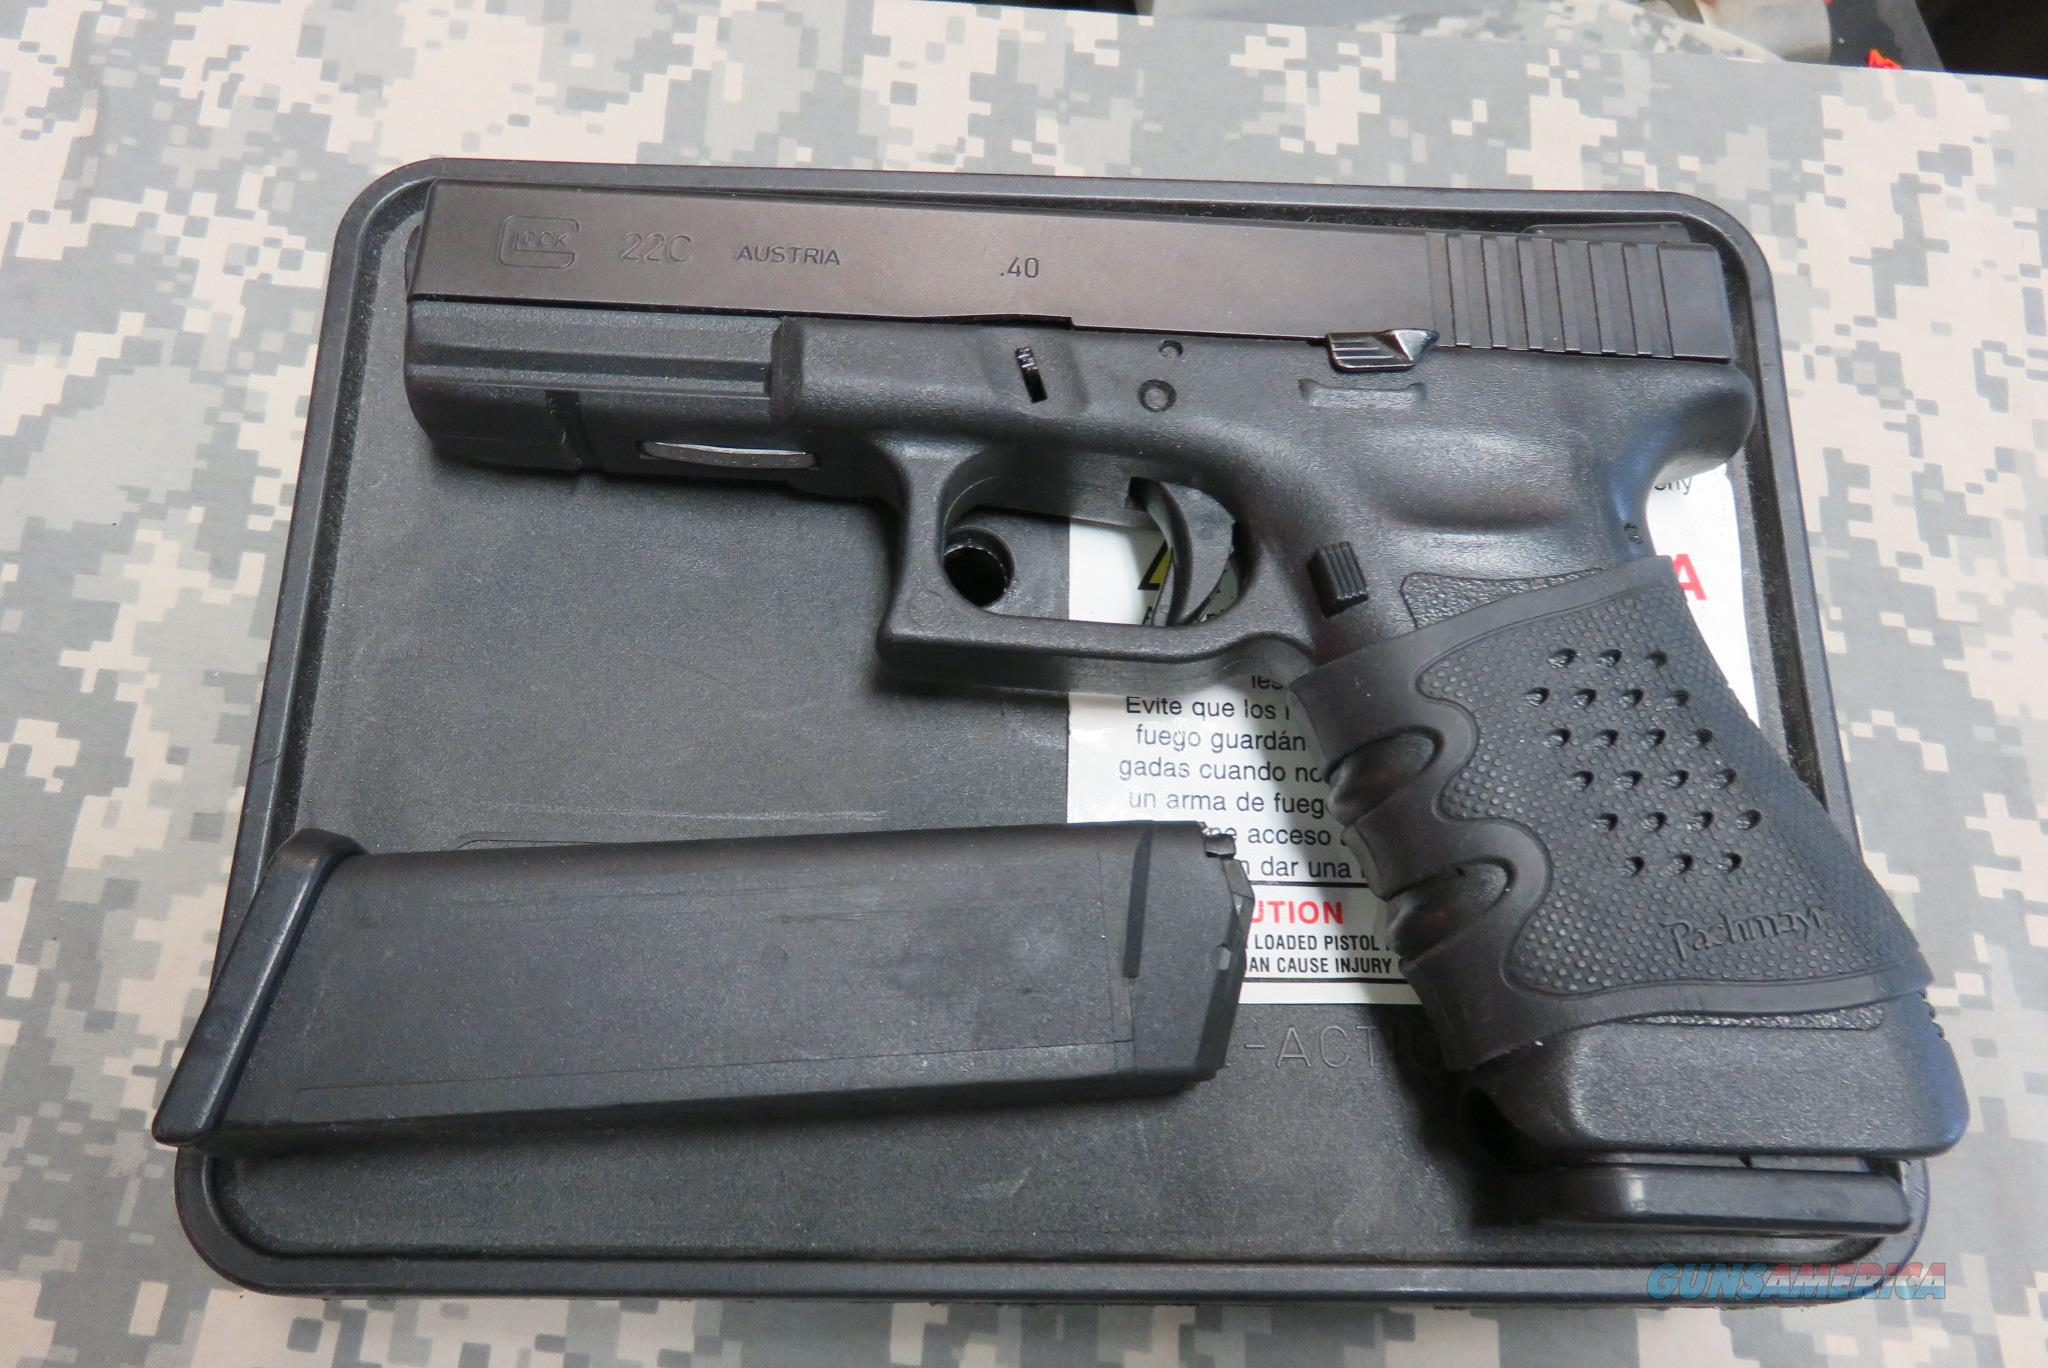 GLOCK 22C G3 40CAL WITH TRUGLO FIBER OPTIC NIGHT SIGHTS AND MORE  Guns > Pistols > Glock Pistols > 22